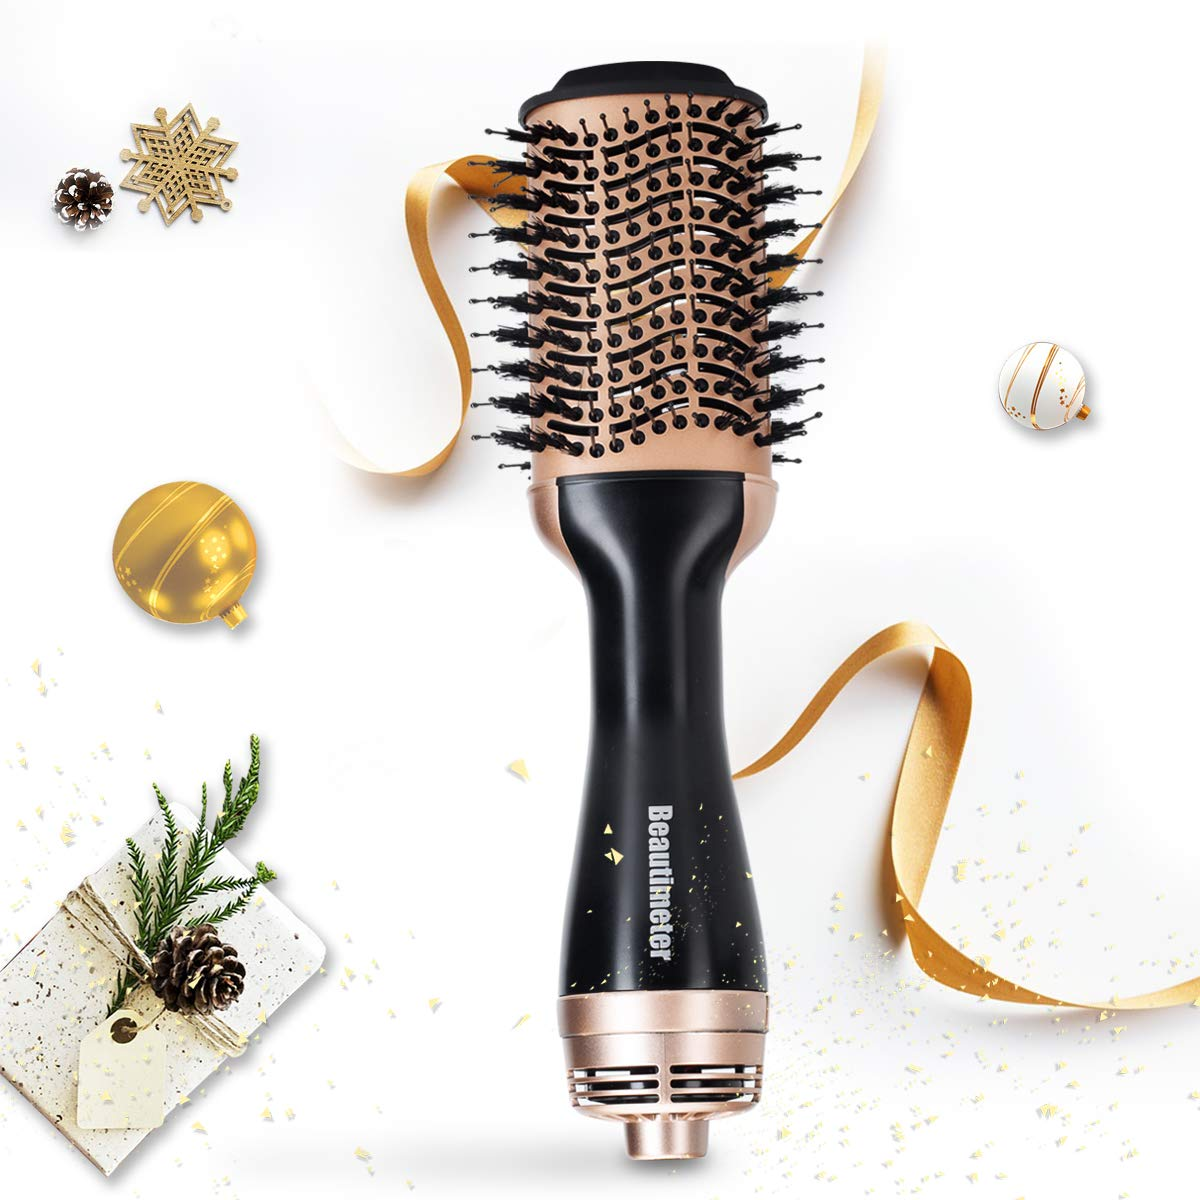 Hot-Air Brush, Negative Ionic Hair Dryer & Volumizer, One Step Hair Styler, Achieve Salon Styling at Home, 1000W, Black & Gold